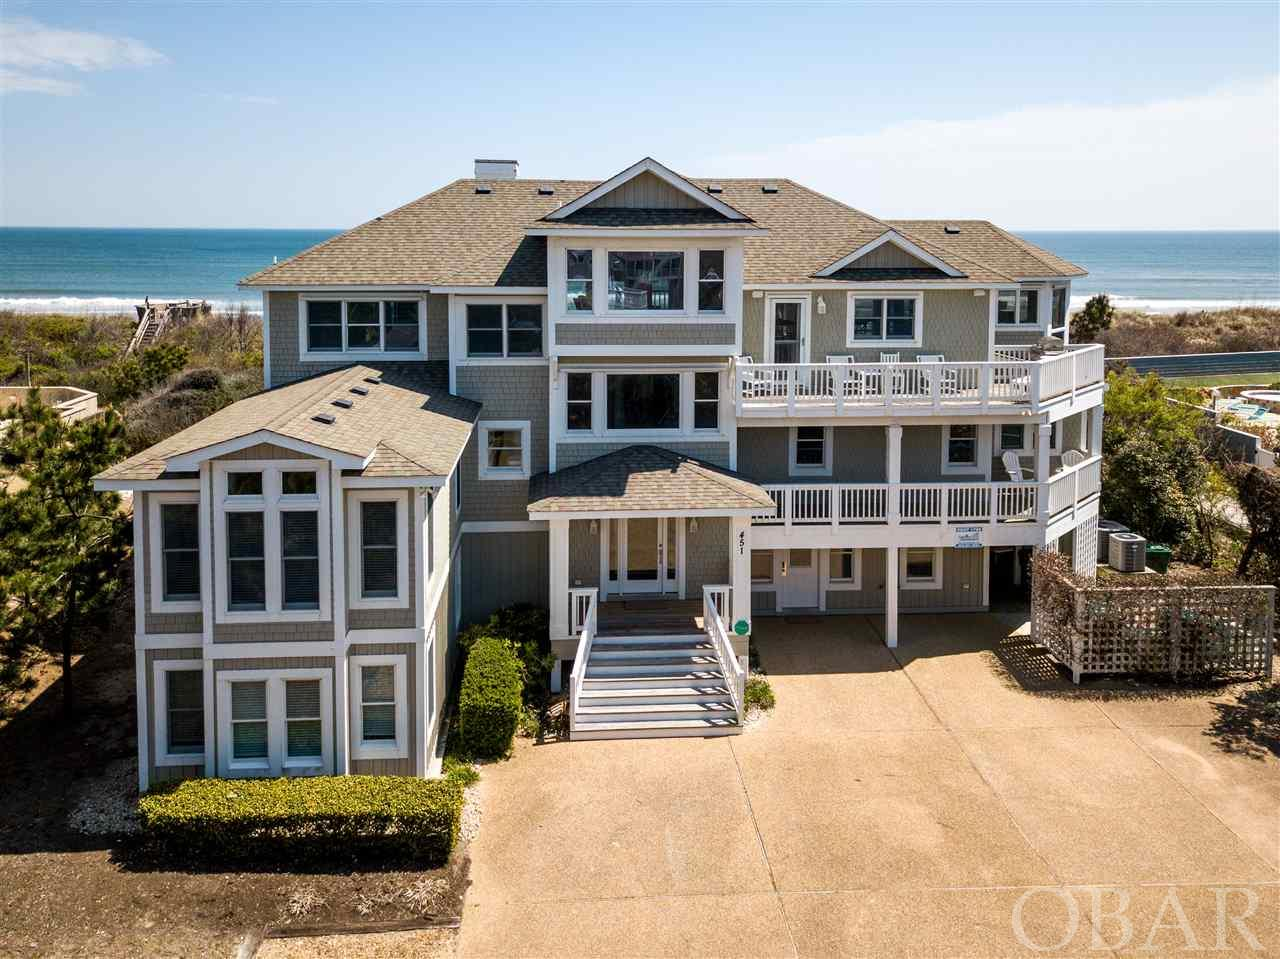 451 Pipsi Point Road,Corolla,NC 27927,9 Bedrooms Bedrooms,10 BathroomsBathrooms,Residential,Pipsi Point Road,99633